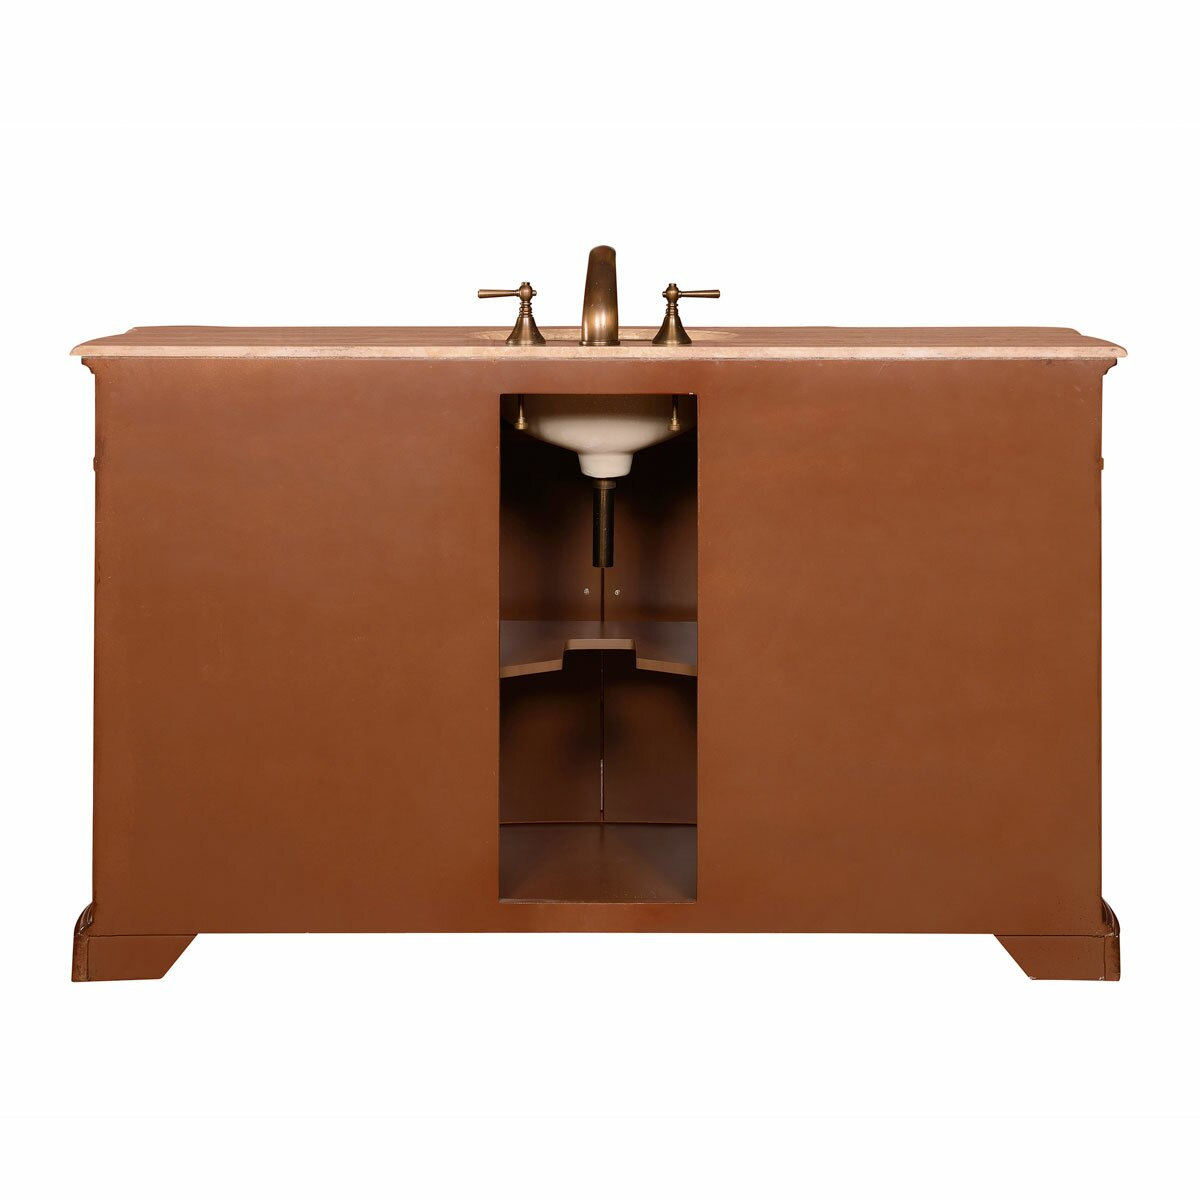 Silkroad exclusive 60 sink cabinet bathroom vanity set for Restroom vanity